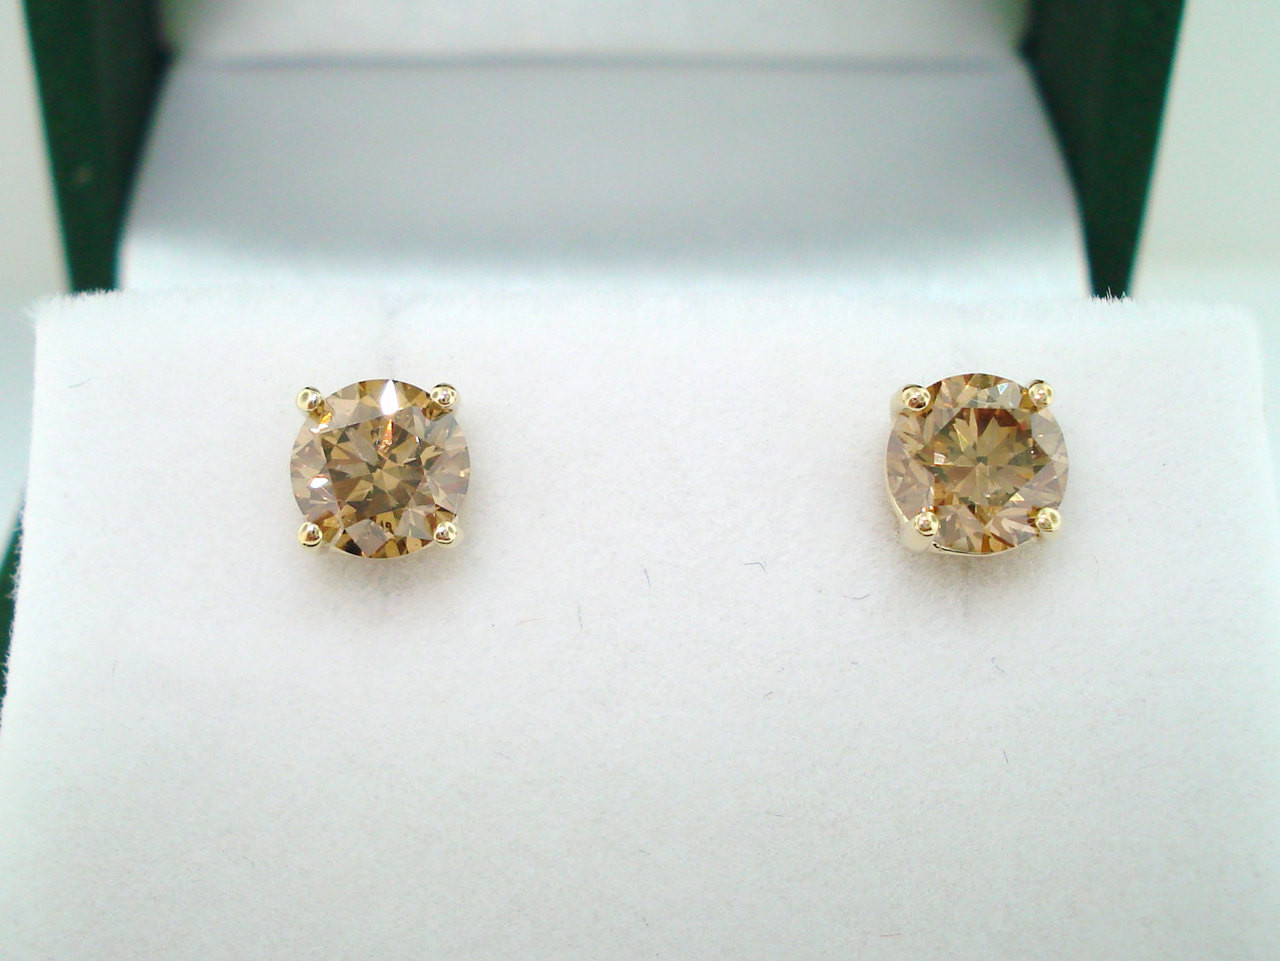 1 02 Carat Fancy Champagne Brown Diamond Stud Earrings 14k Yellow Gold Handmade